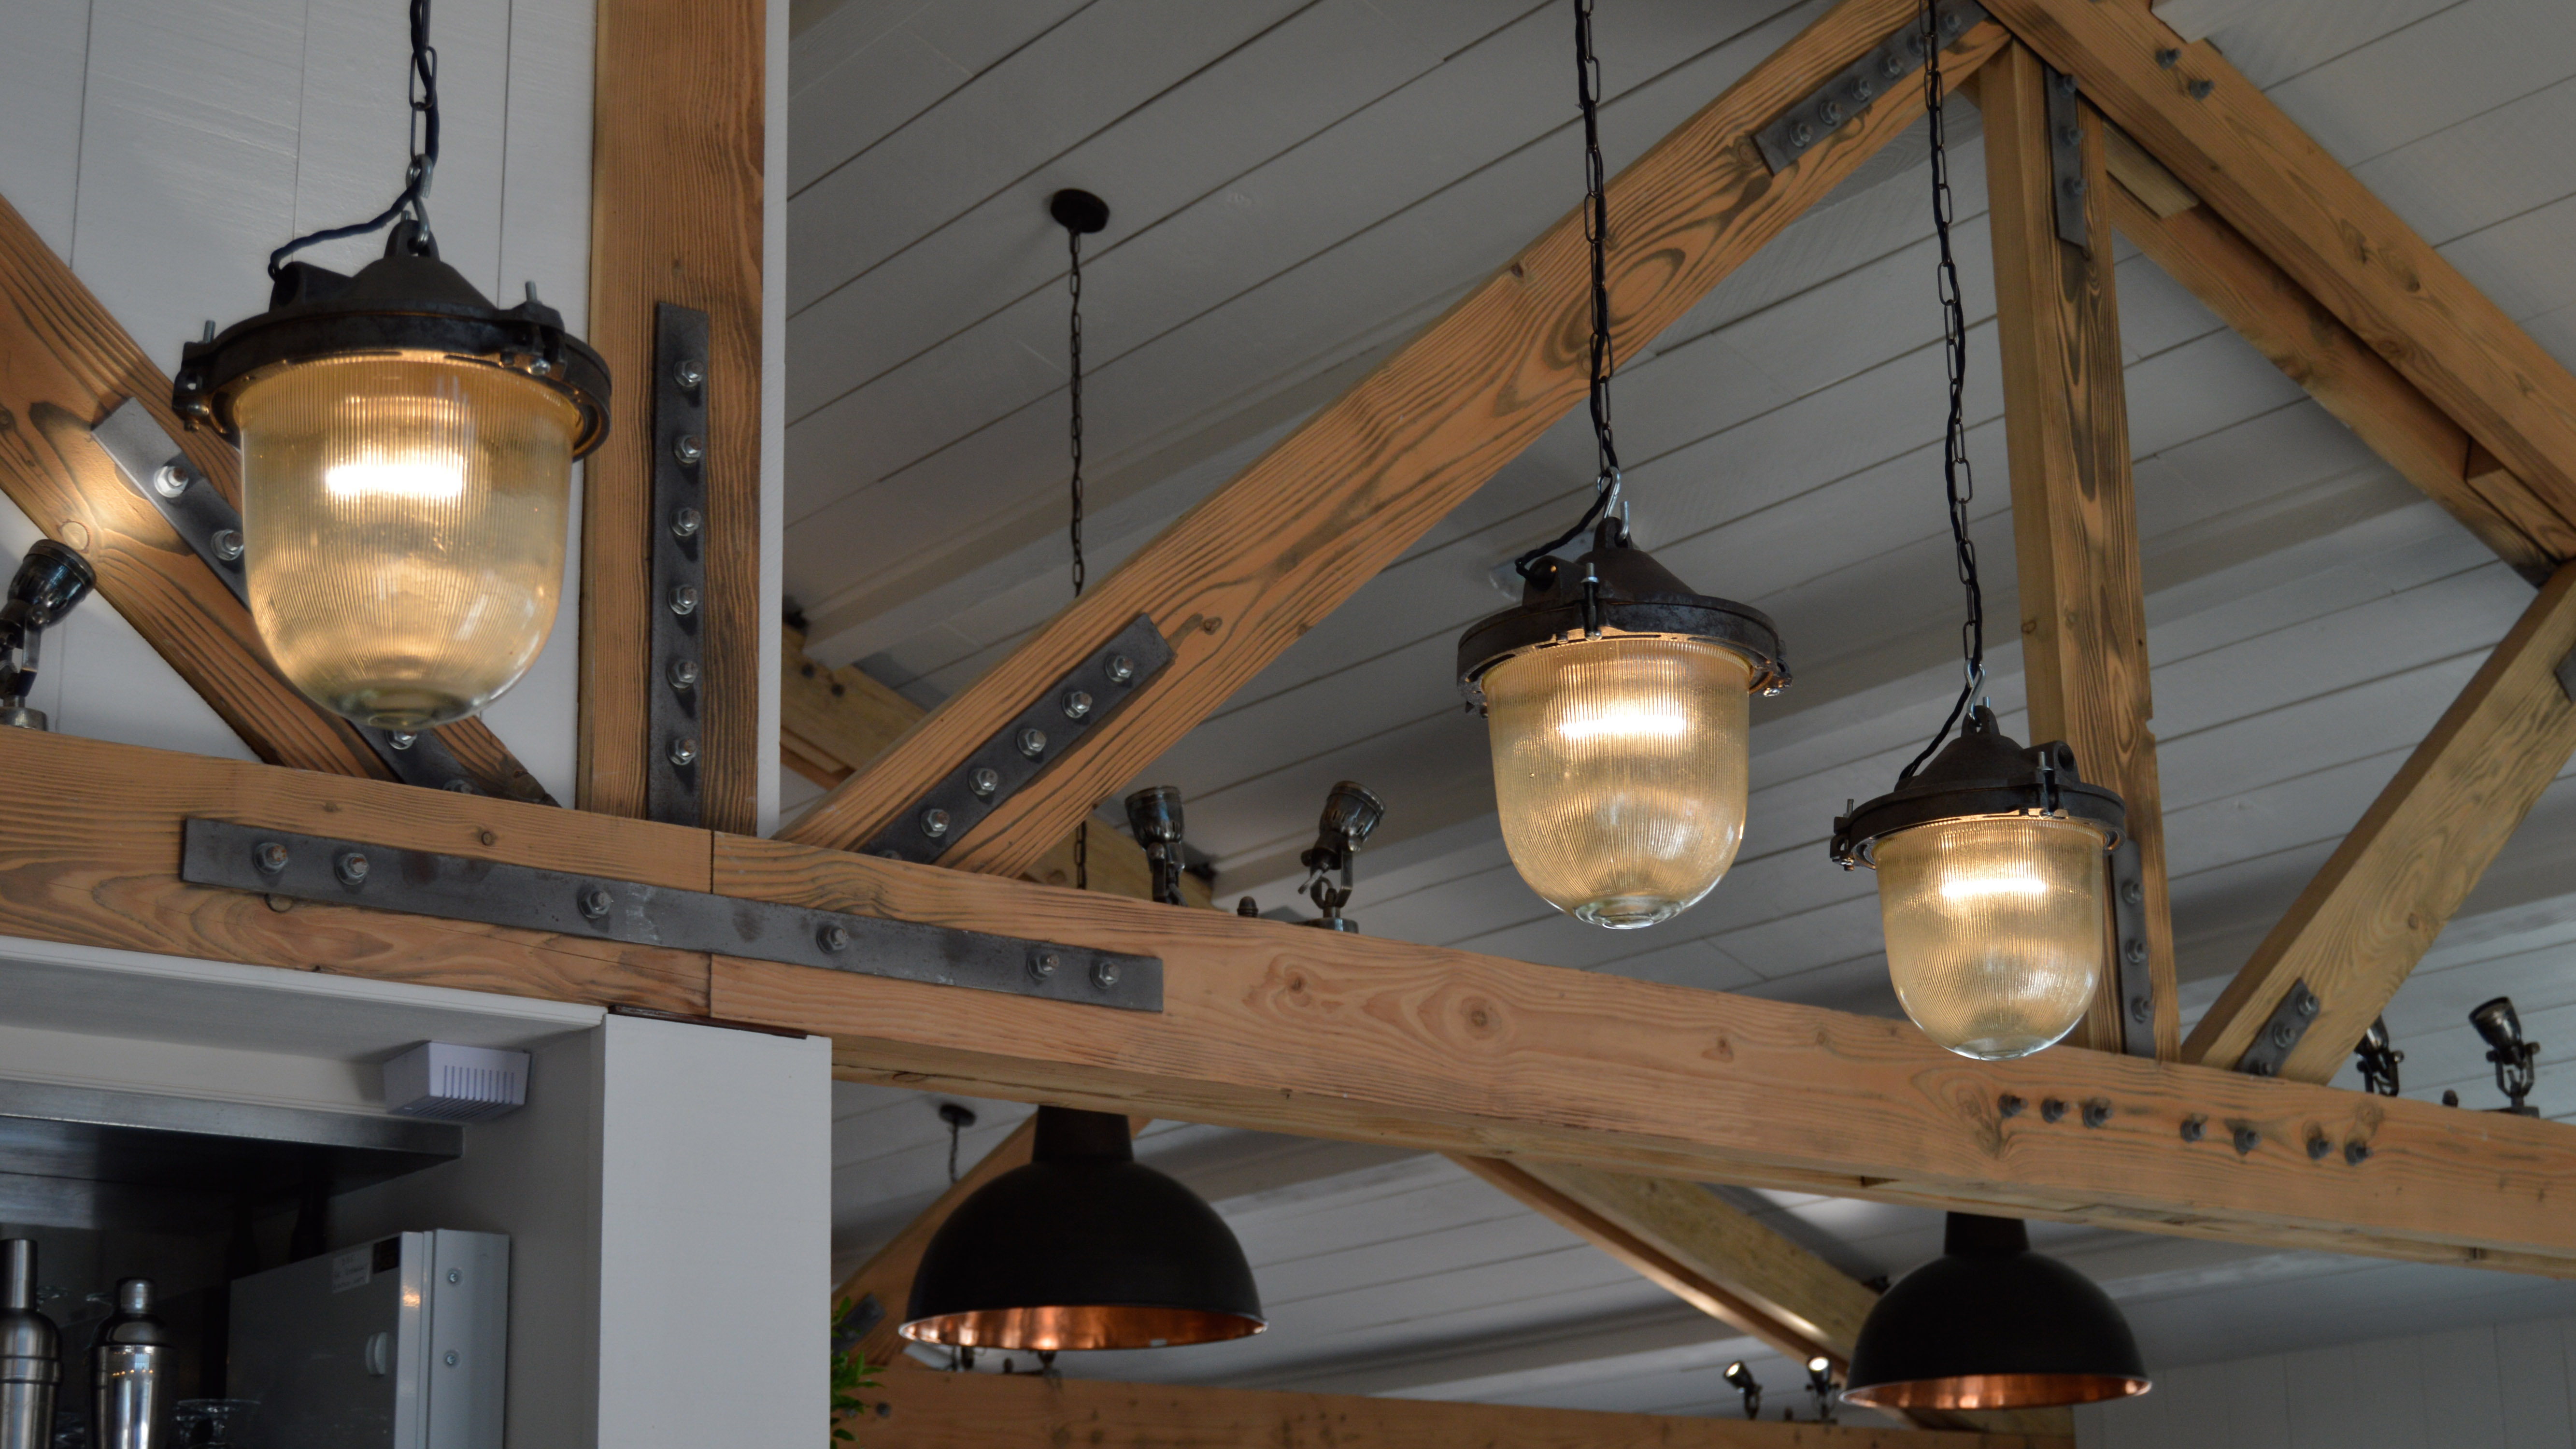 Lighting Detail & Timber Structure